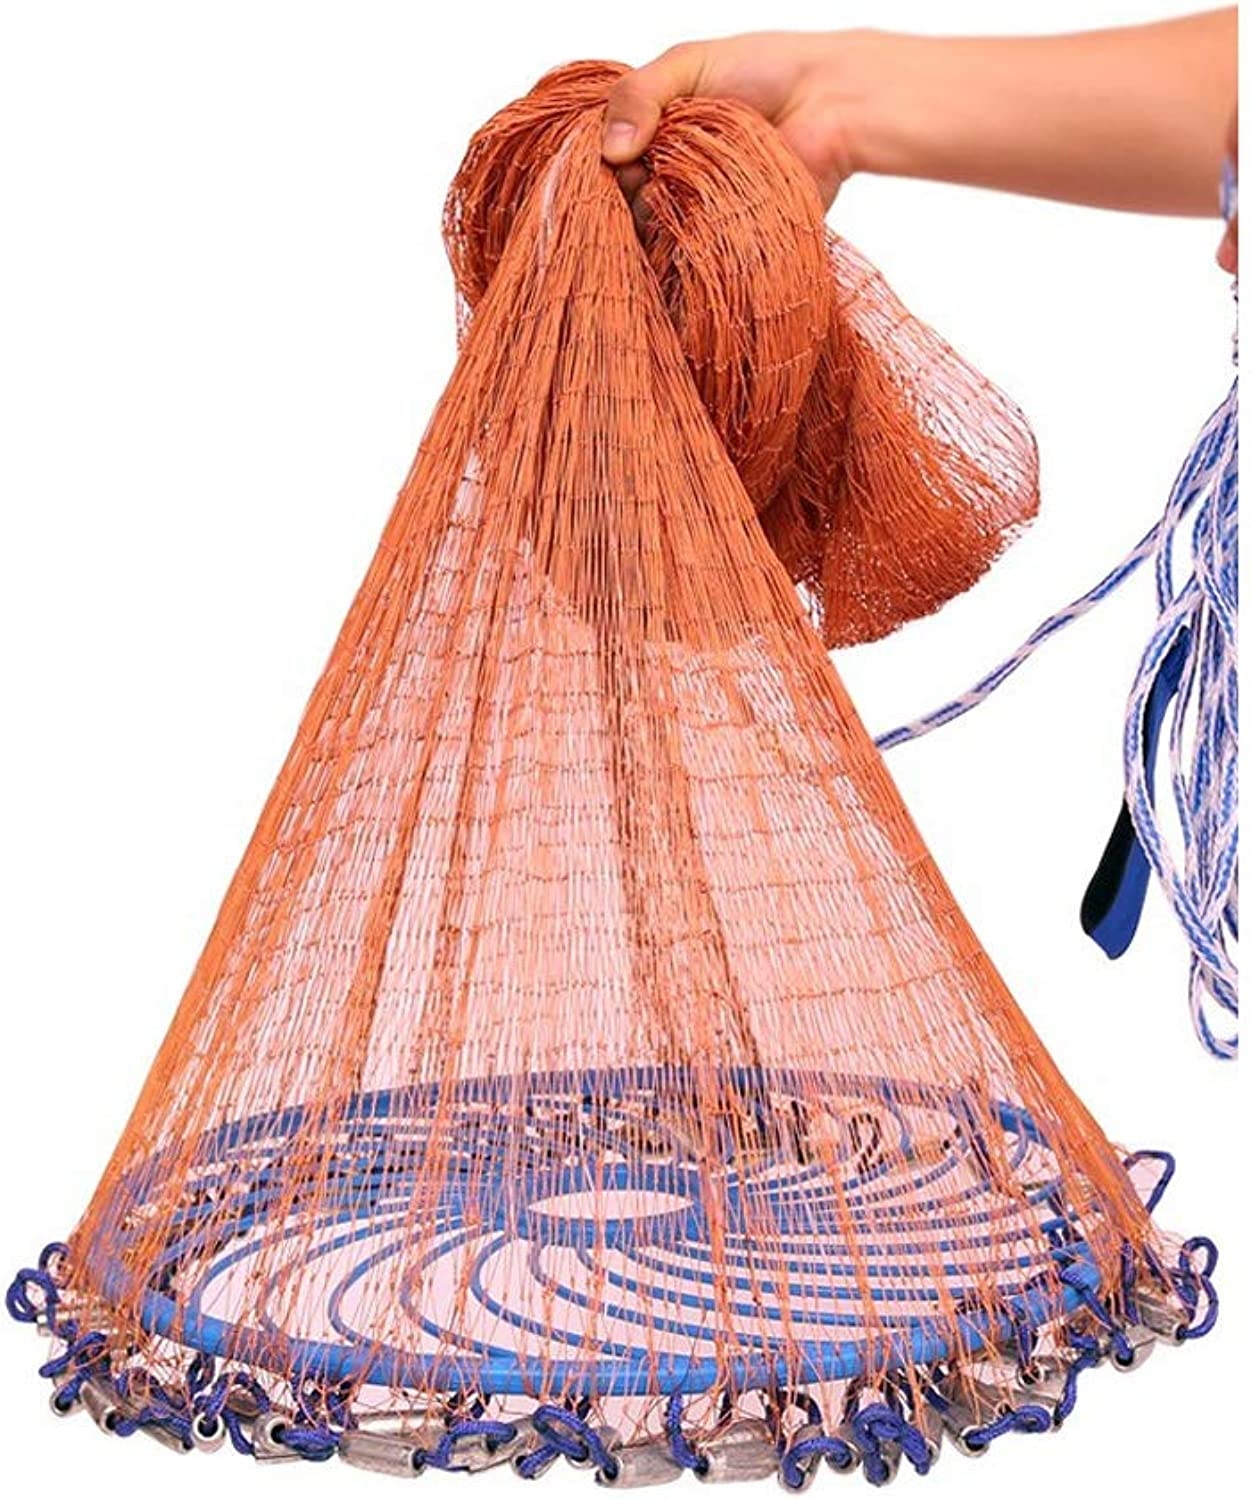 Hand Throwing Disc Fishing Nets Fishing Artifacts Trap Fishing Tools Folding Wearable Decoy Lightweight Easy to Use MultiSize Optional (Size   1.2m high Steel Pendant)